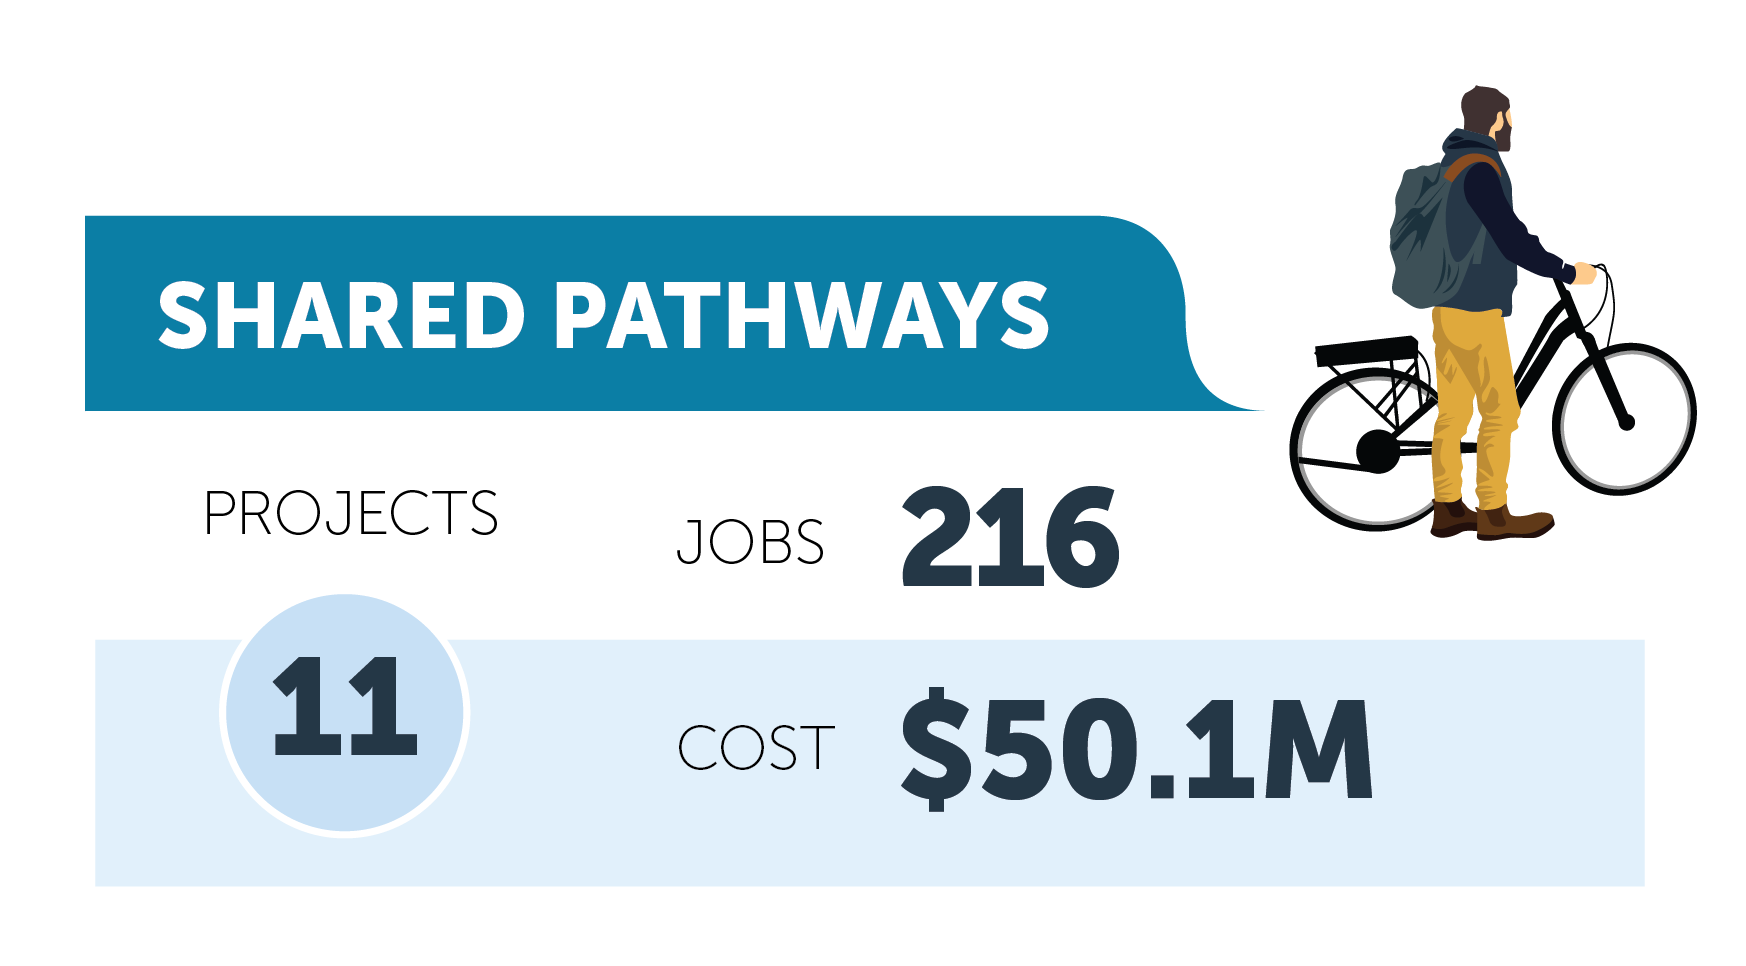 Shared pathways figures